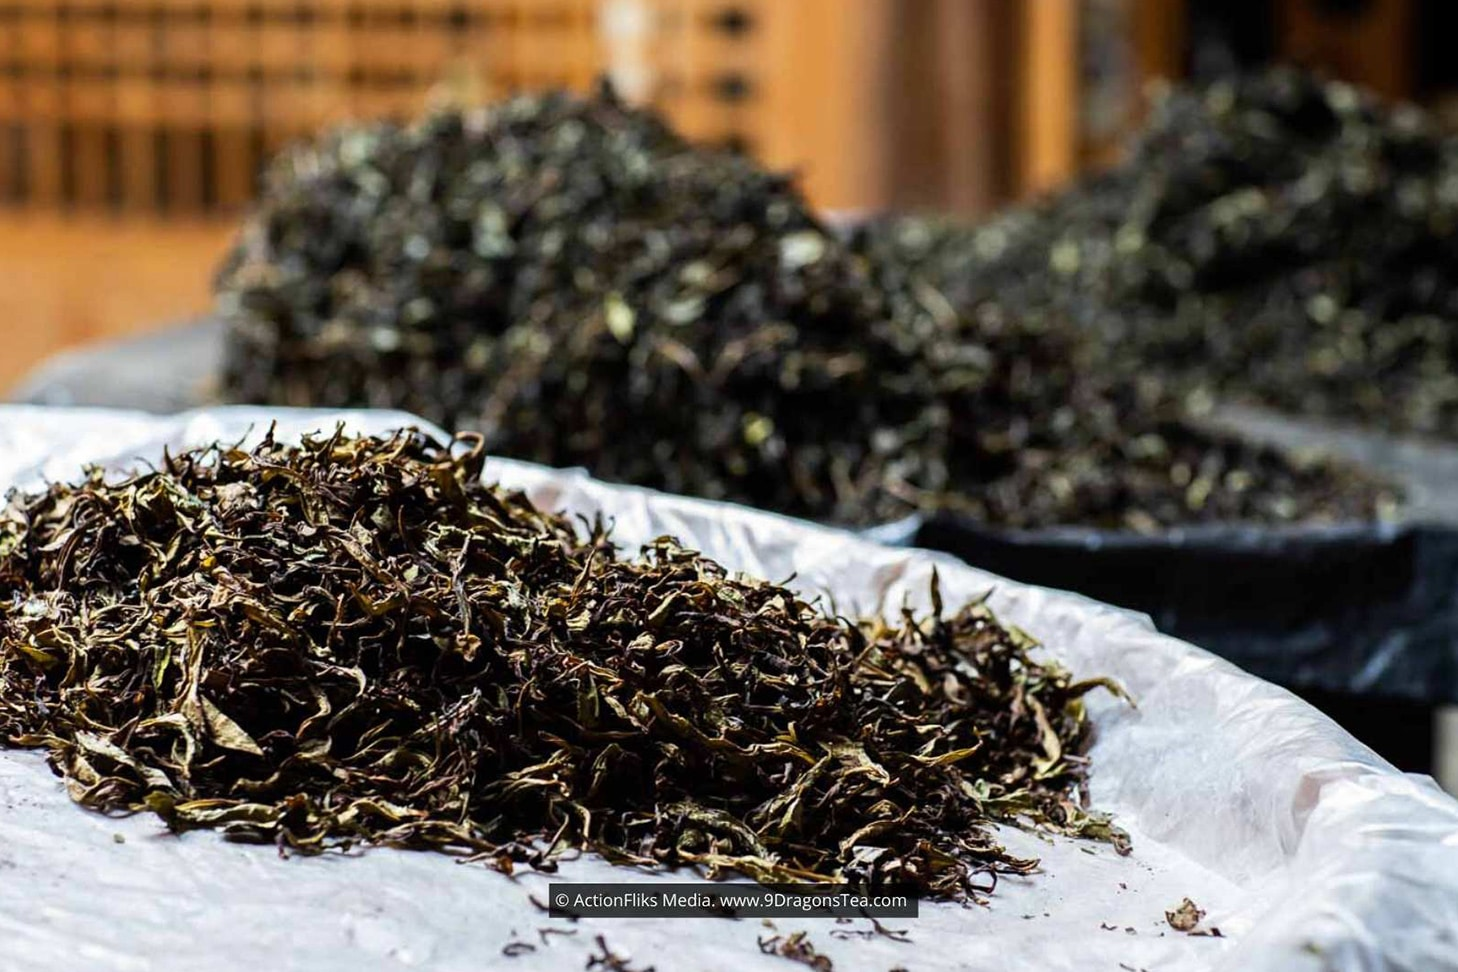 traditional chinese tea making Loose Tea Leaves in Piles